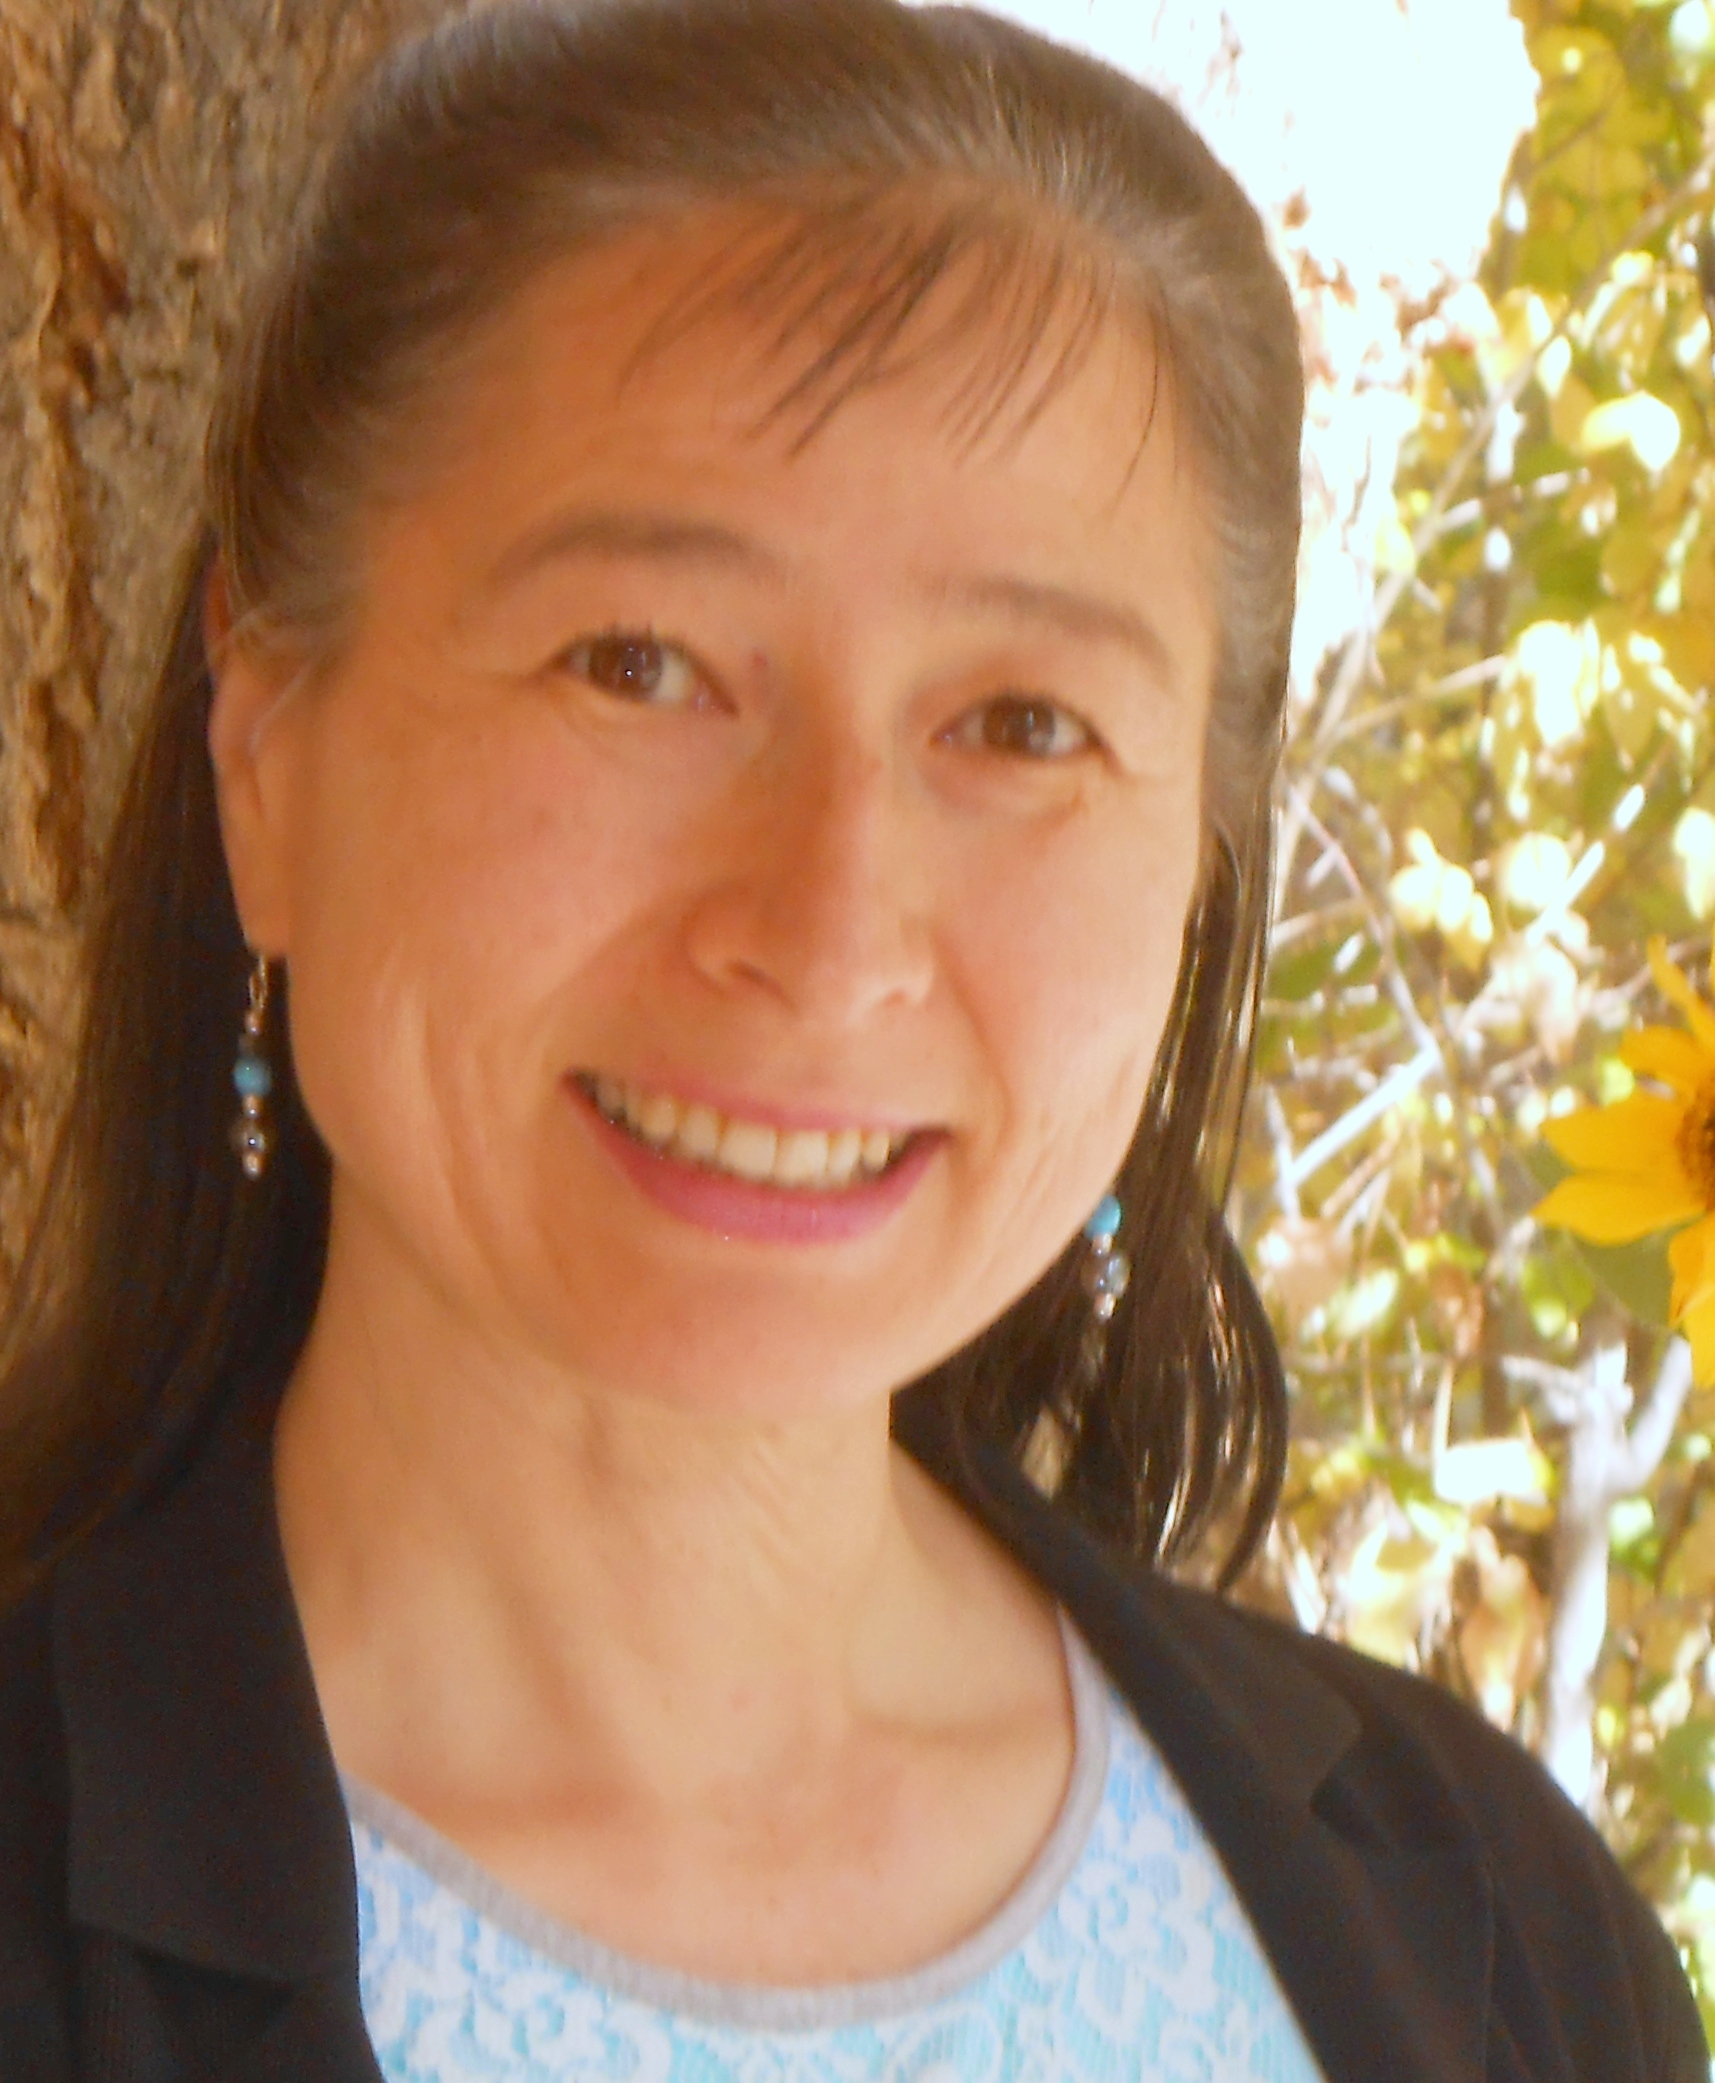 Kyoko Moriyasu Hummel   LMT #072 Licensed Instructor # I-119  Since 1991, Kyoko has offered various massage and spa therapies. In October 2000, Kyoko founded Essential Massage and Spa Therapies. She created our Anti-aging Eye Pampering and Herbal Foot Wrap therapies.  In 2016, Kyoko created the Crystal Cocoon Sessions in response to her own profound healing with the Biomat.  Kyoko specializes in Cranio-sacral therapy and prenatal massage. Cranio-sacral helps to enhance the flow of the cerebro-spinal fluid using gentle palpation and is profoundly relaxing. Kyoko delights in working with a firm yet gentle touch. She is also our colon therapist.